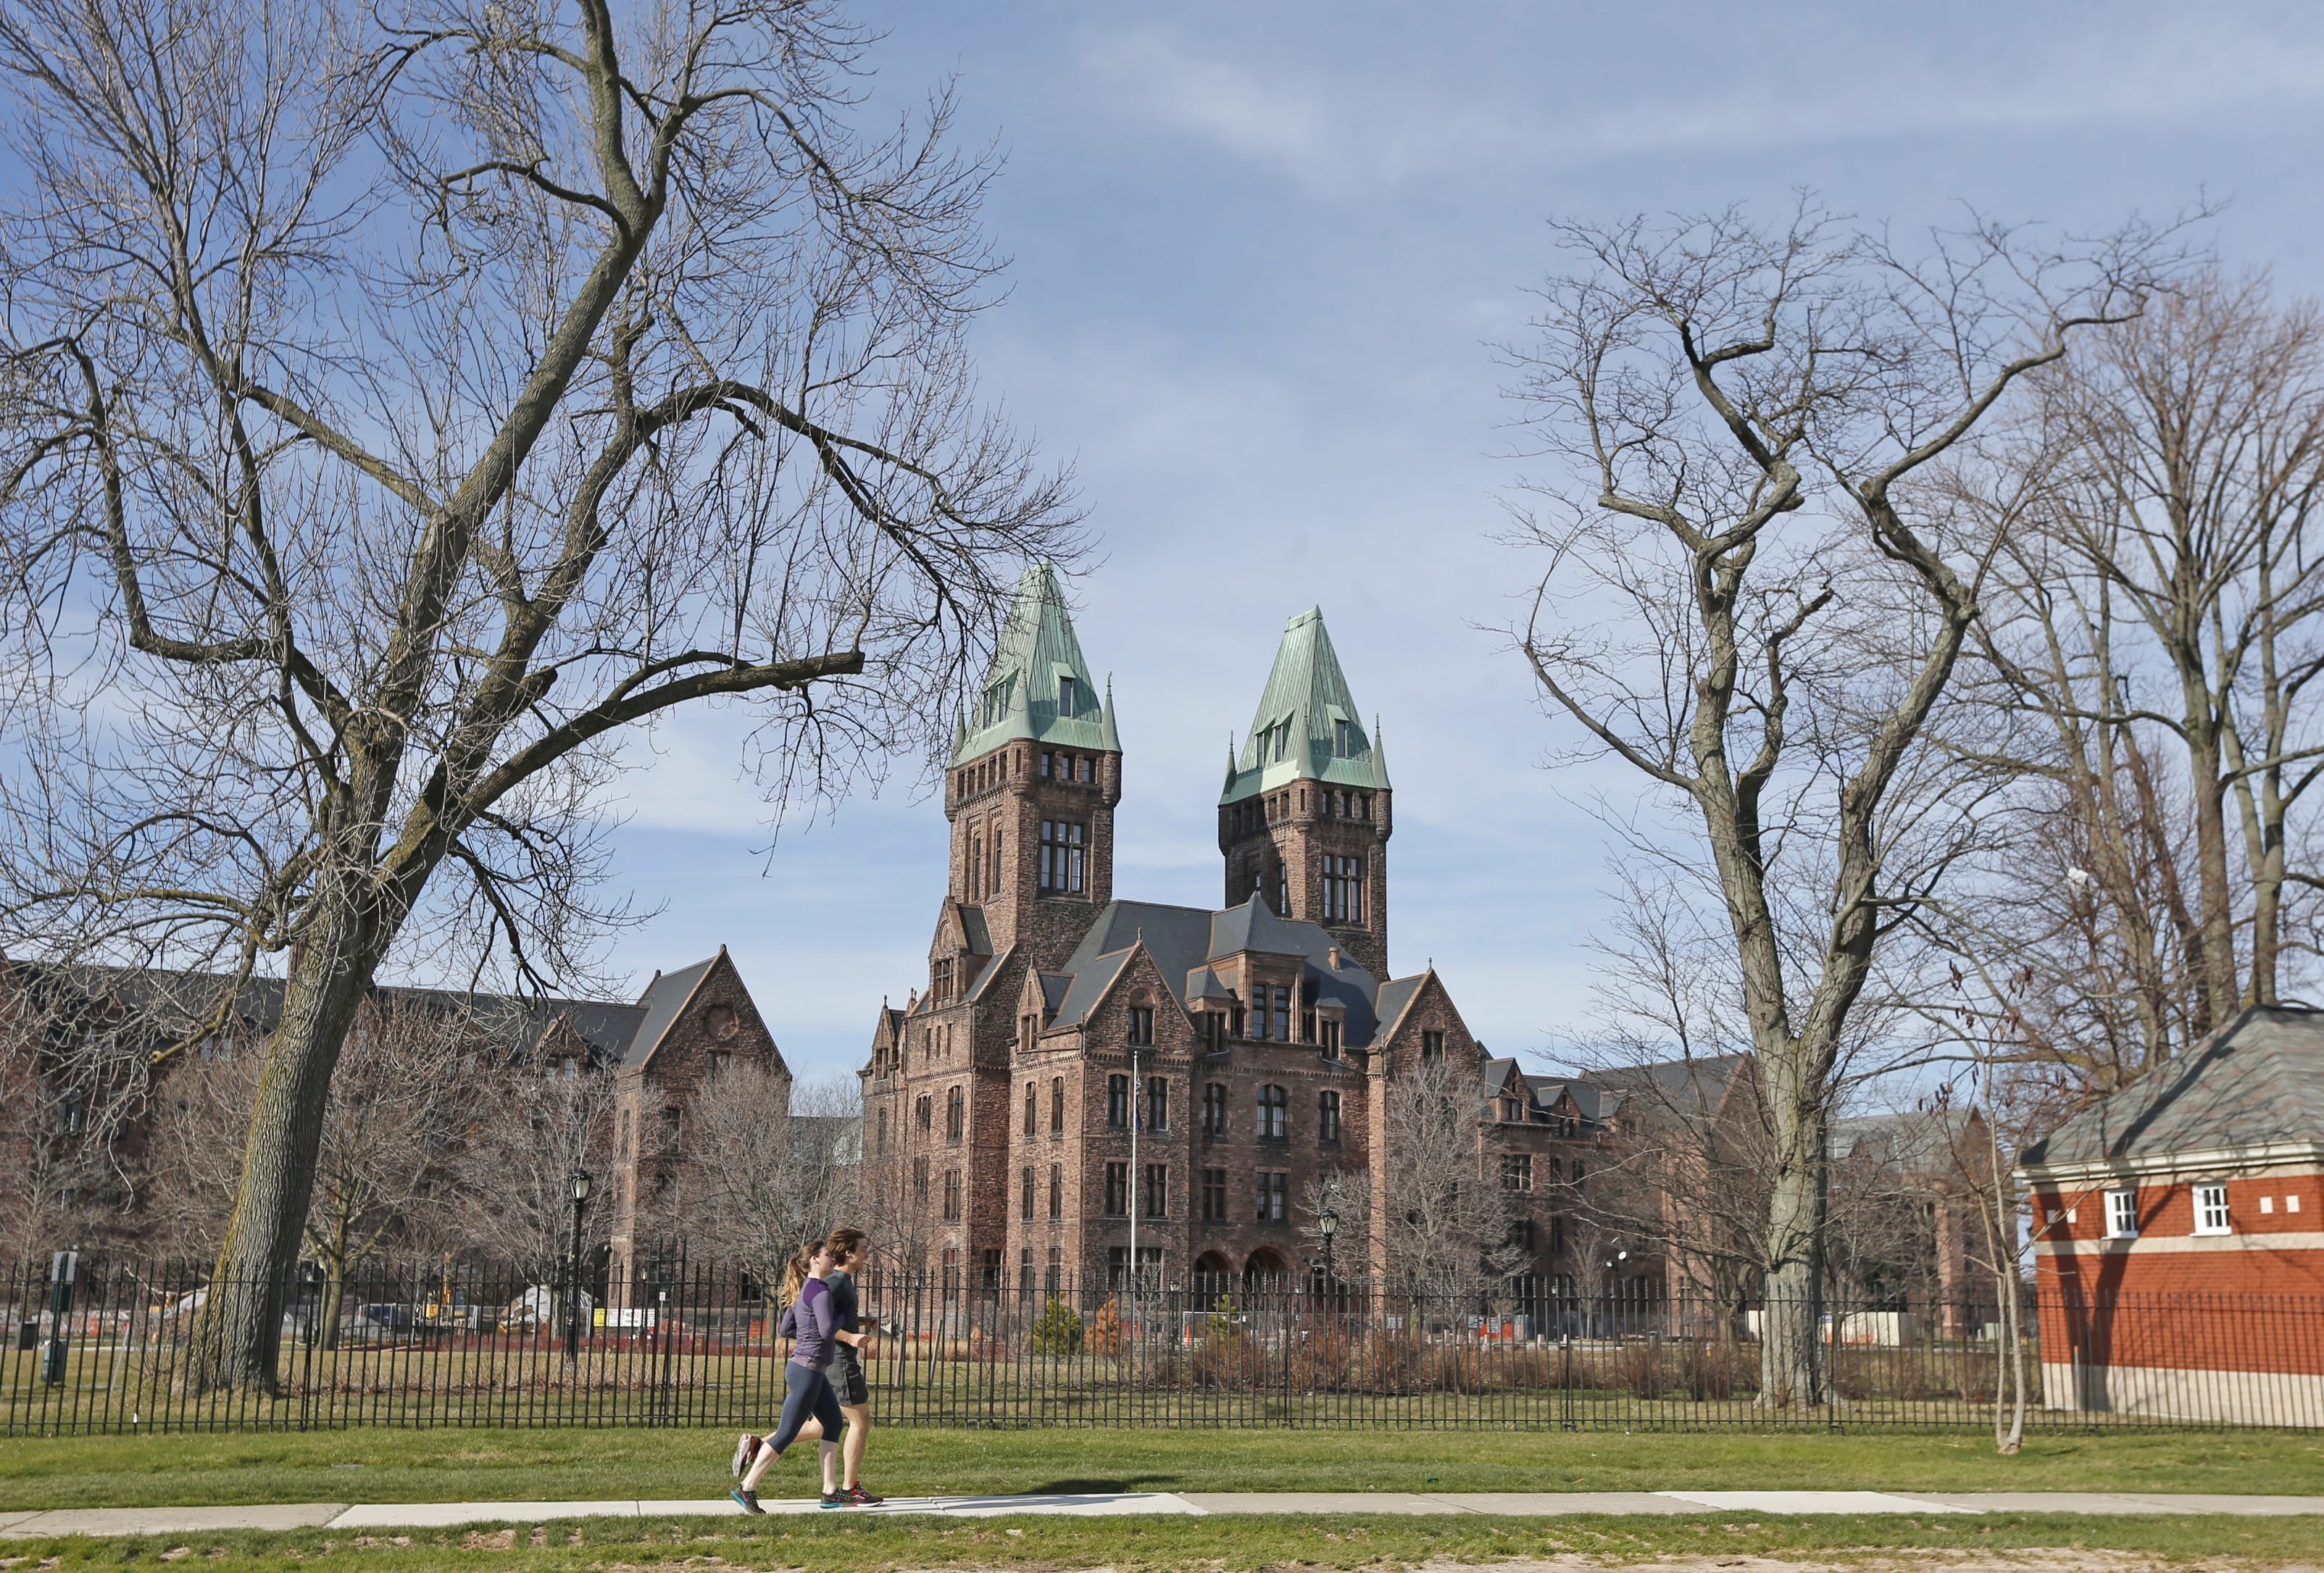 Recent tours offered a glimpse into the progress, and the challenges, in converting a portion of the Richardson Complex near Buffalo State College into Hotel Henry and the Buffalo Architectural Center. (Robert Kirkham/Buffalo News)